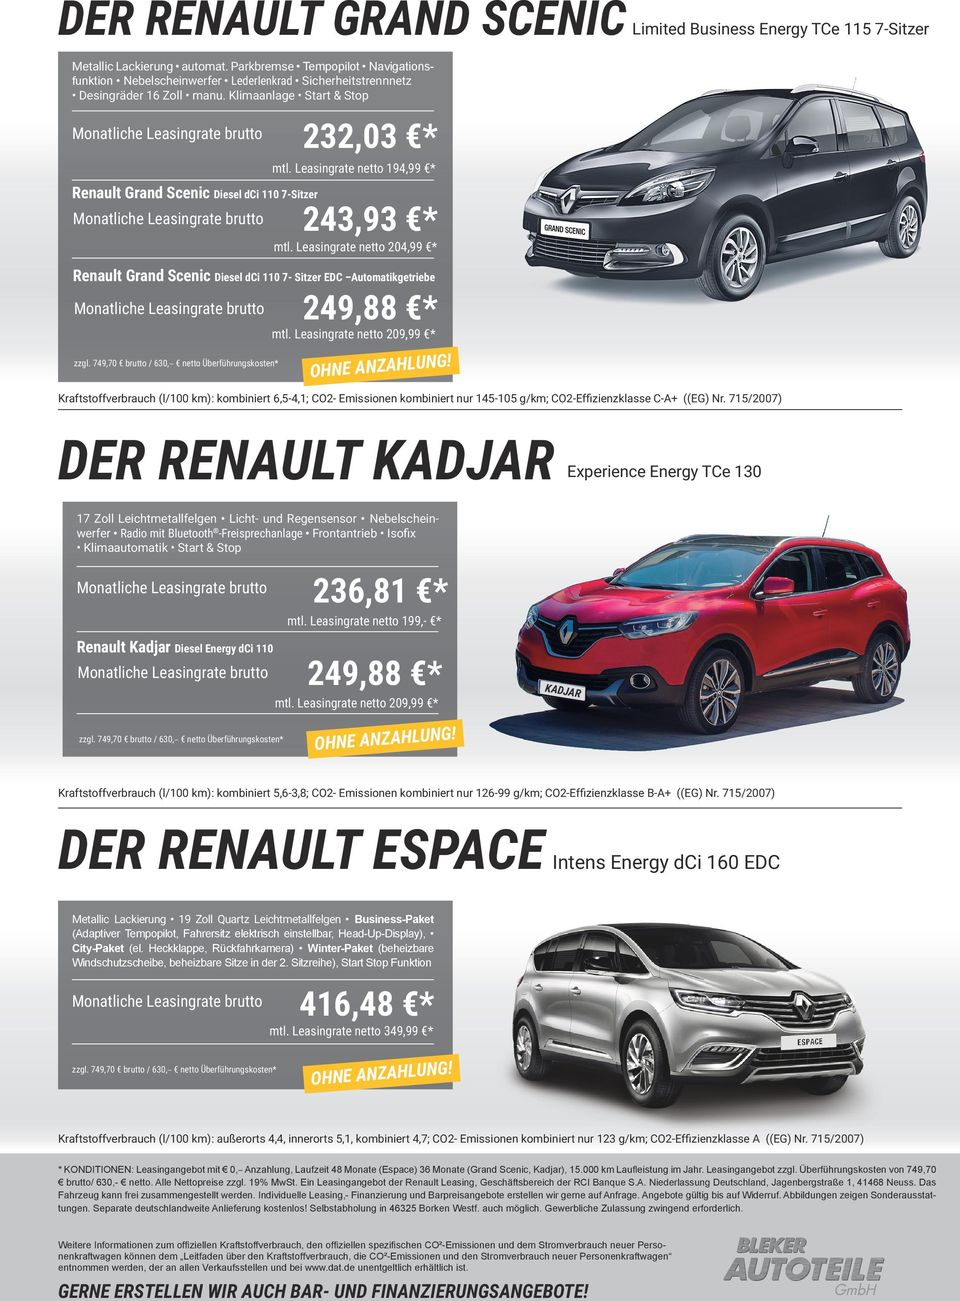 Leasingrate netto 194,99 * Renault Grand Scenic Diesel dci 110 7-Sitzer 243,93 * mtl. Leasingrate netto 204,99 * Renault Grand Scenic Diesel dci 110 7- Sitzer EDC Automatikgetriebe 249,88 * mtl.